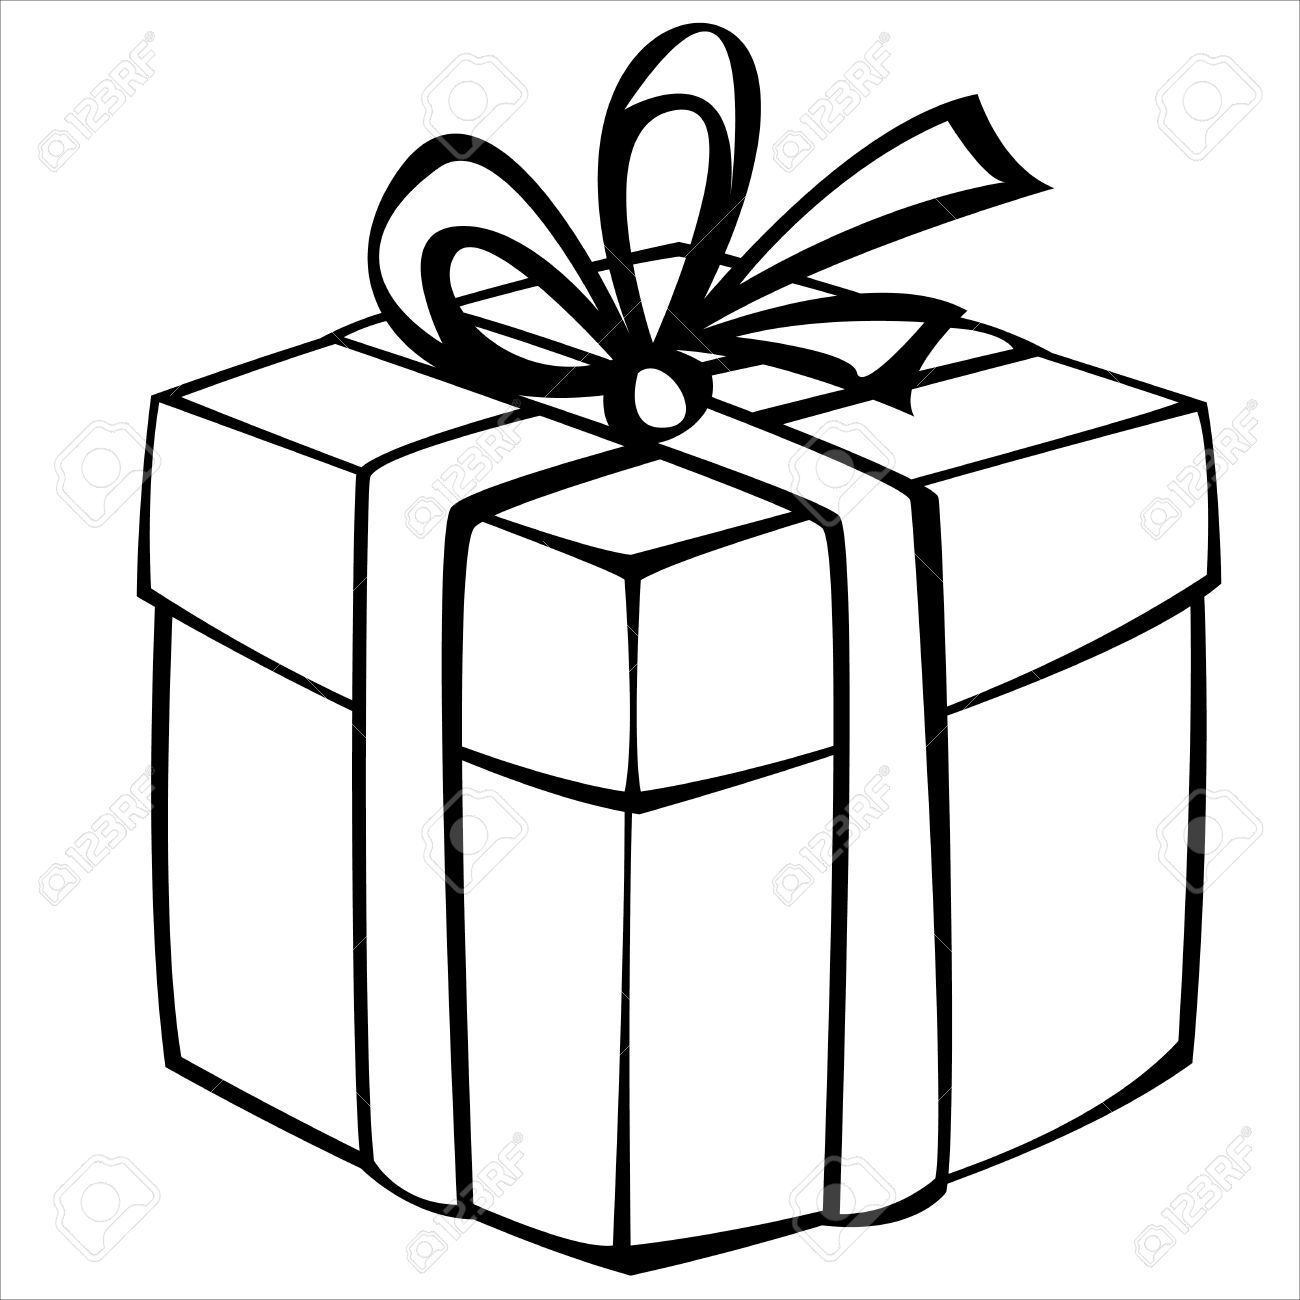 Gift box drawing at. Boxes clipart sketch